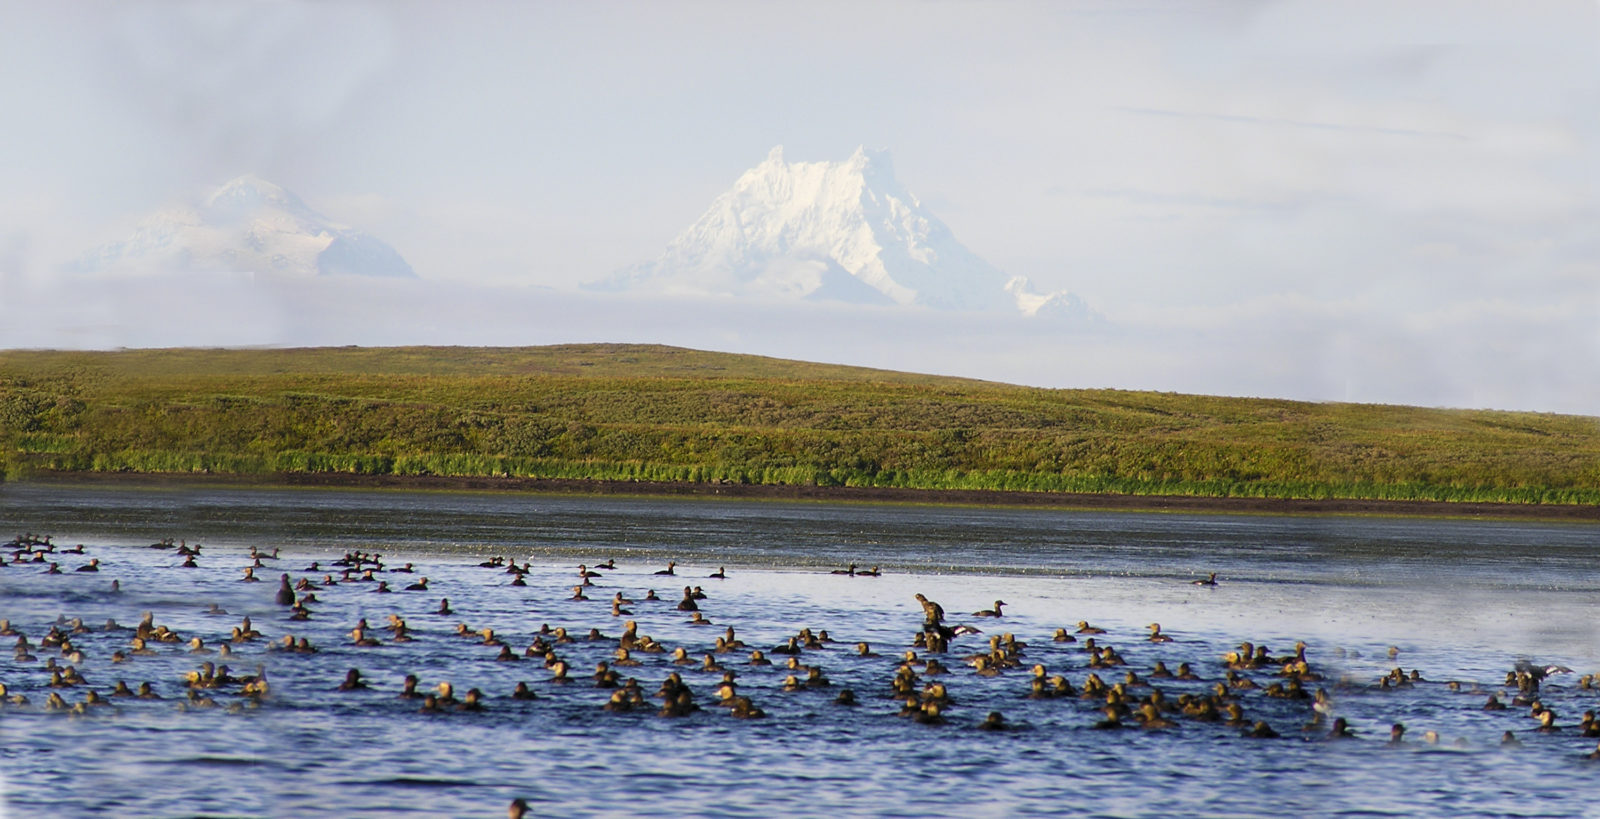 Birdlife depends on the eelgrass in Izembek Lagoon, just one reason protecting Izembek from a road means going to court again.  Here, Steller's eiders feed in Izembek Lagoon with Isanotski Volcano in the background.